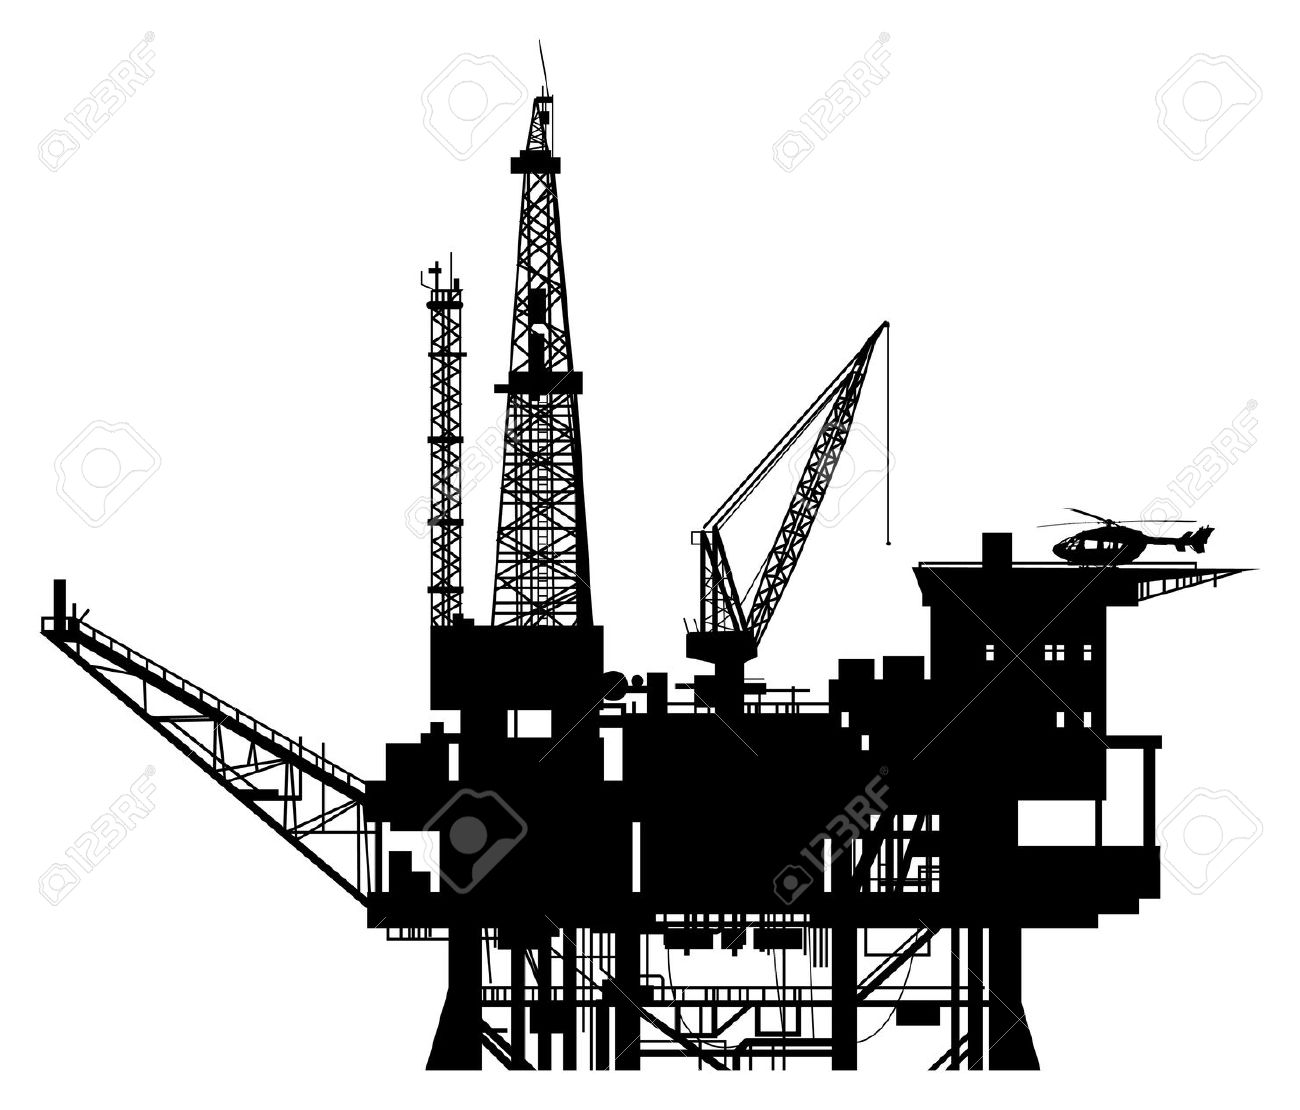 Free Oil Rig Clipart. Oil Rig: Oil Drill-Free Oil Rig Clipart. oil rig: Oil drilling rig .-1